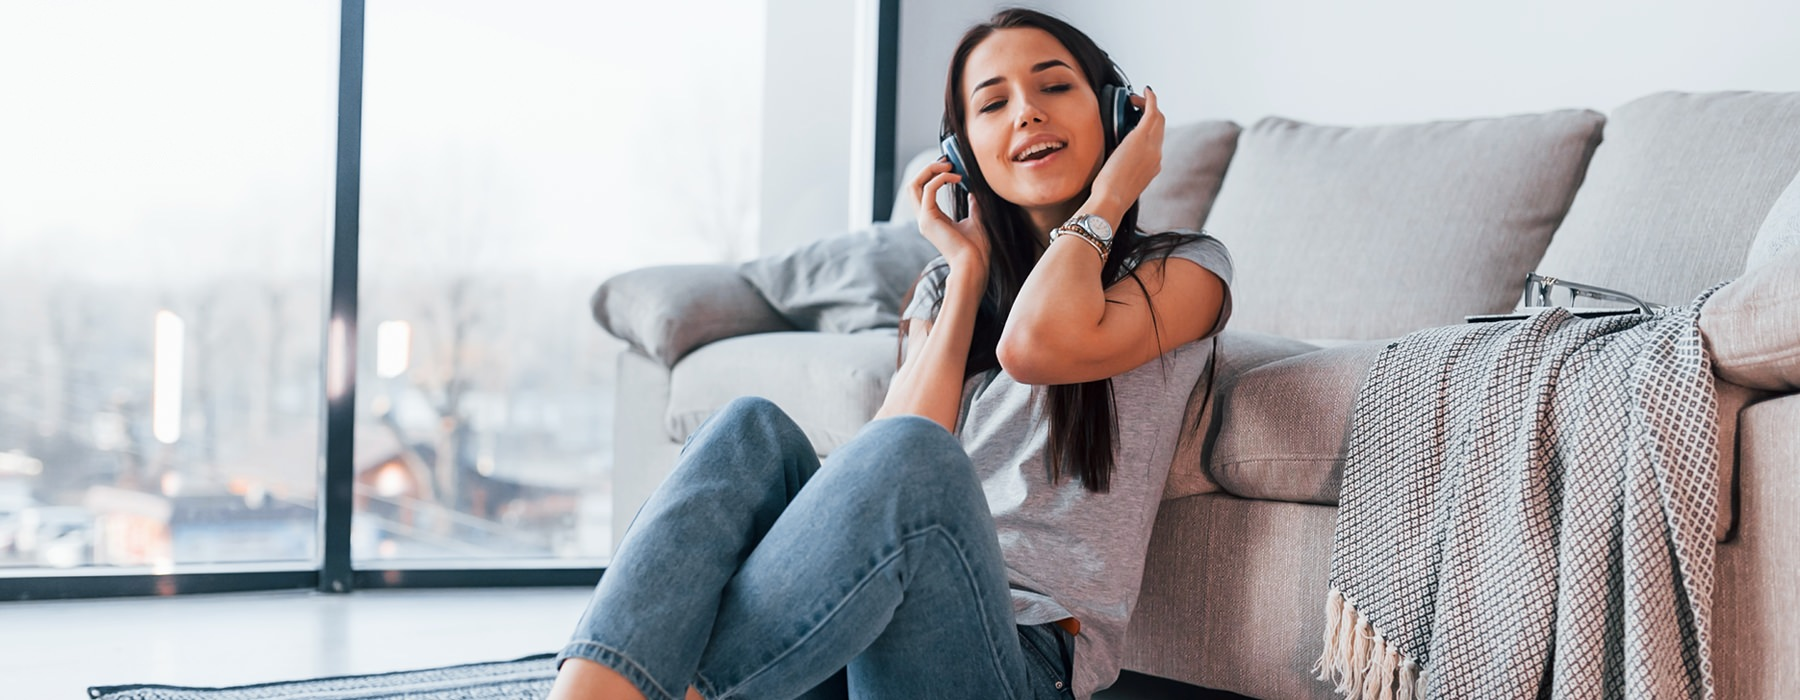 Lifestyle of woman listening to music